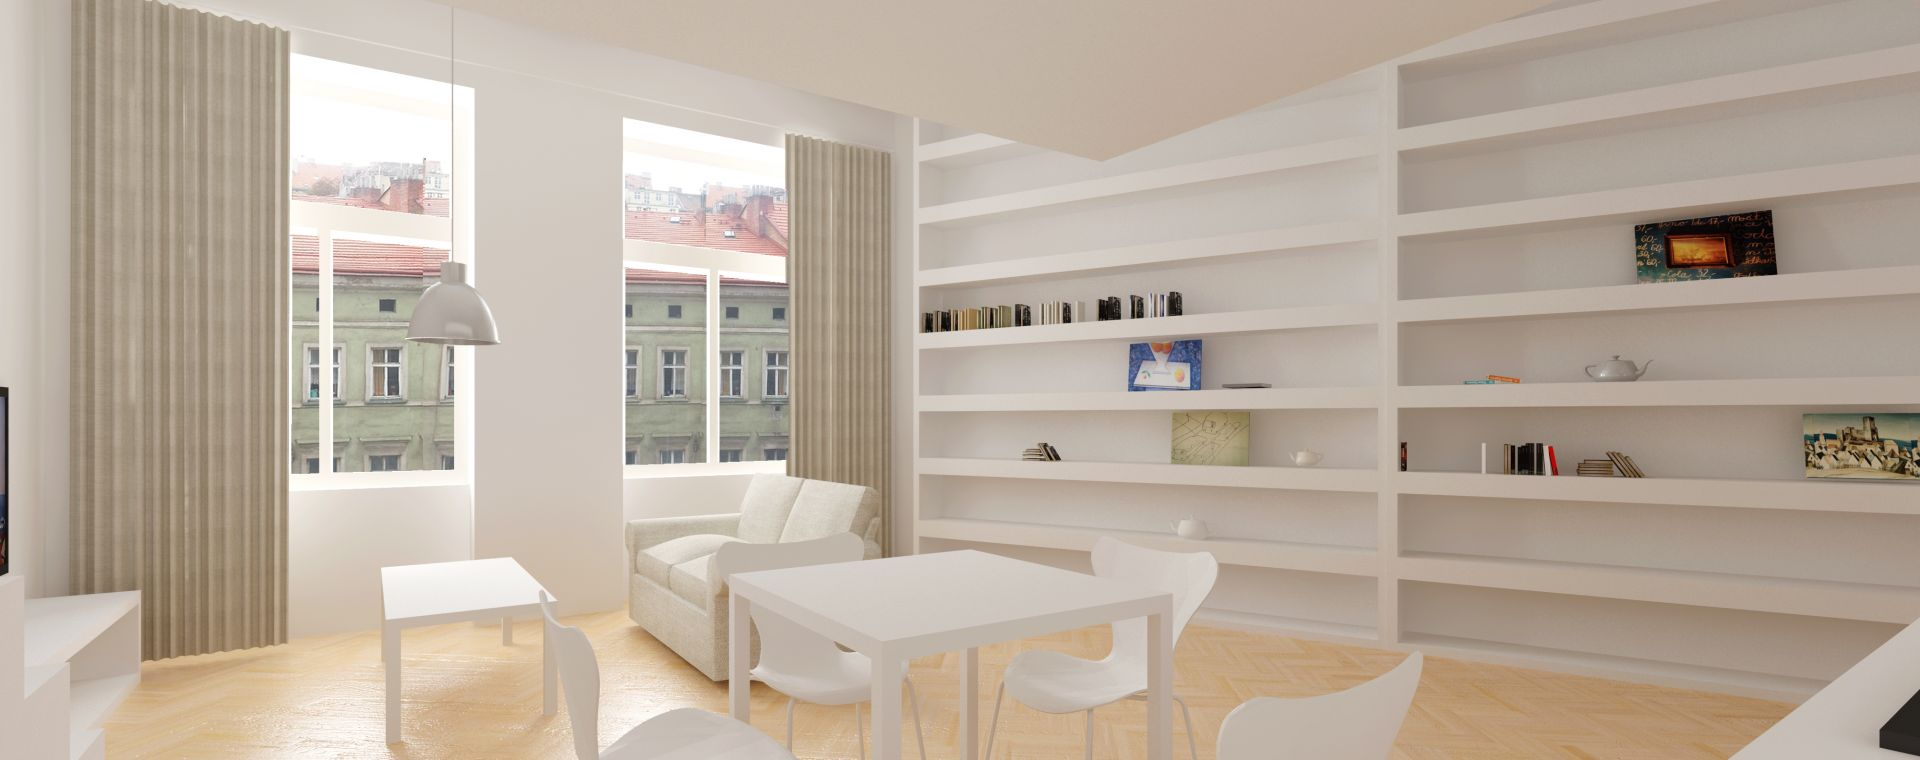 Reconstruction of the flat 2+1, 3th and 4th floor, Prague 7, 2012-2014, CZ